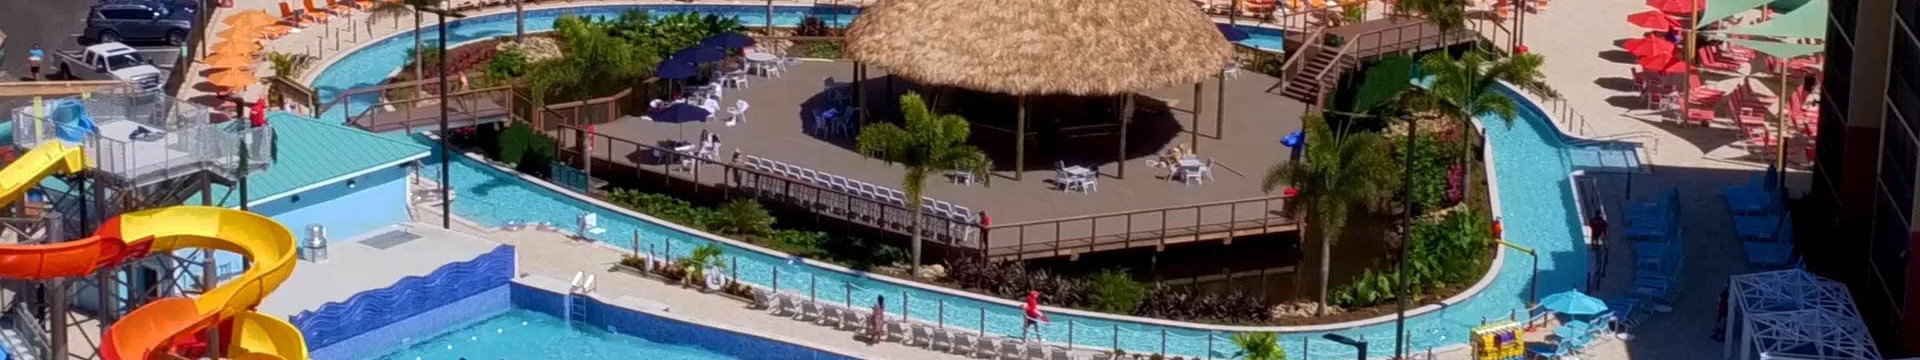 The Best Water Park FL Has To Offer | Treasure Cove Water Park